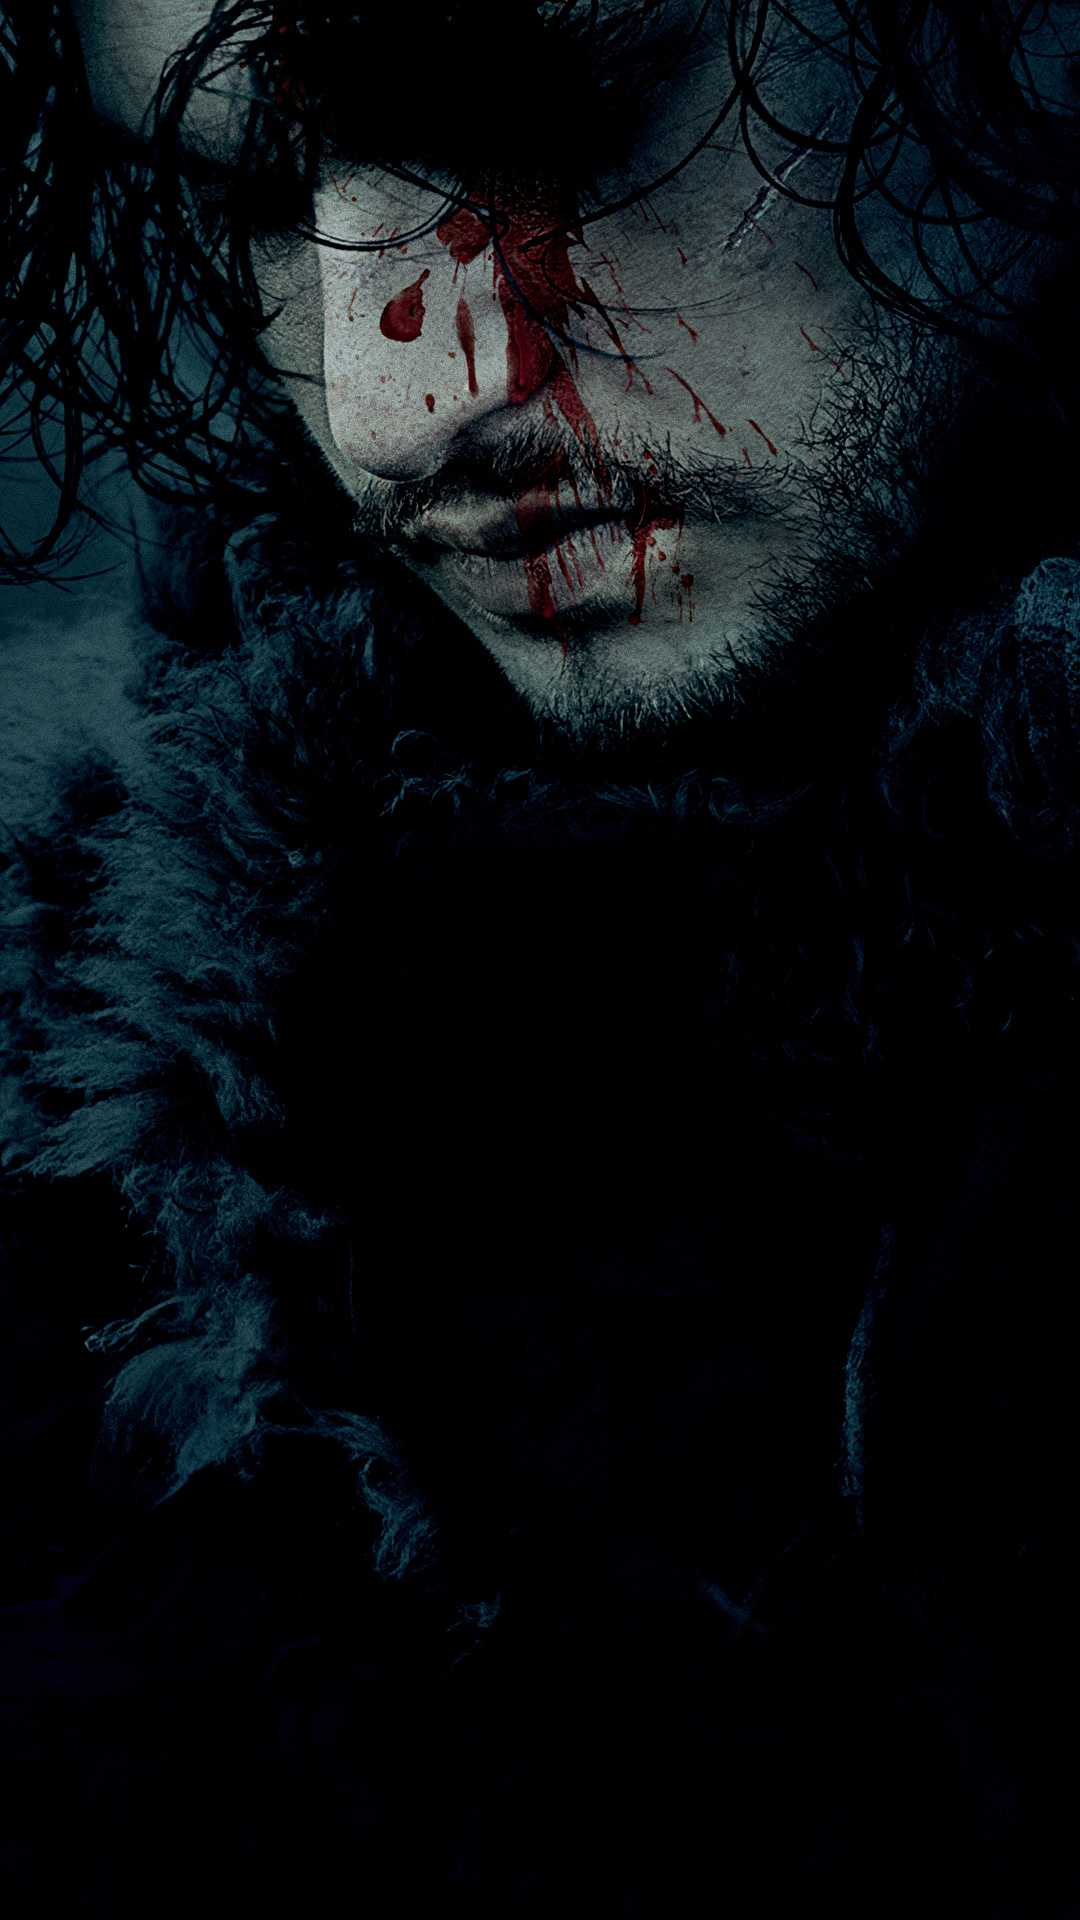 Images Game Of Thrones Kit Harington Men Blood Jon Snow 1080x1920